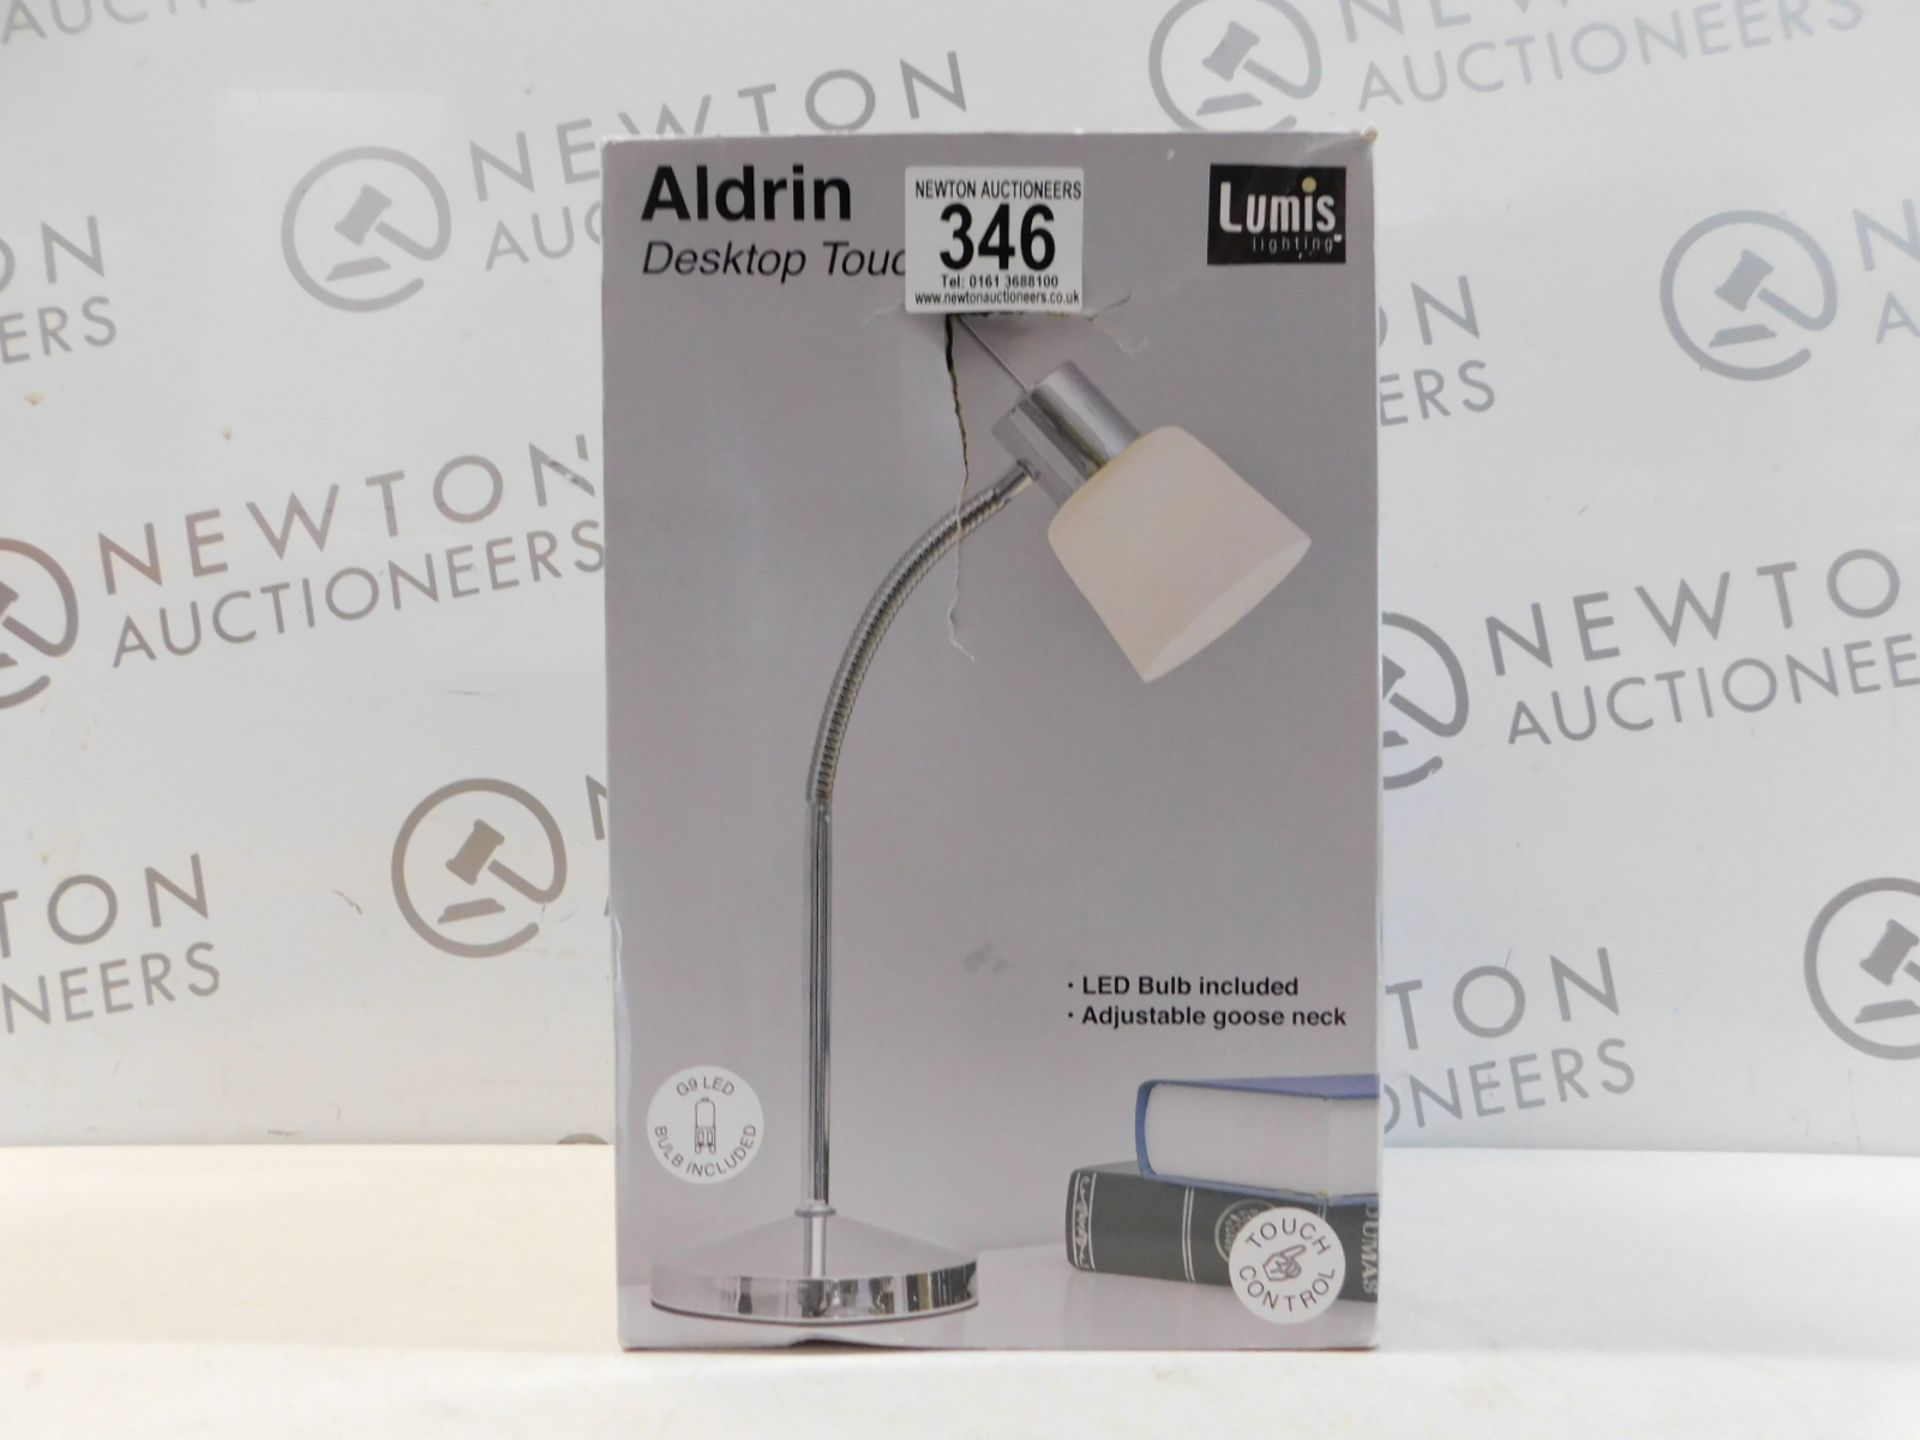 Lot 346 - 1 BOXED LUMIS LIGHTING ALDRIN DESKTOP TOUCH LIGHT RRP £29.99